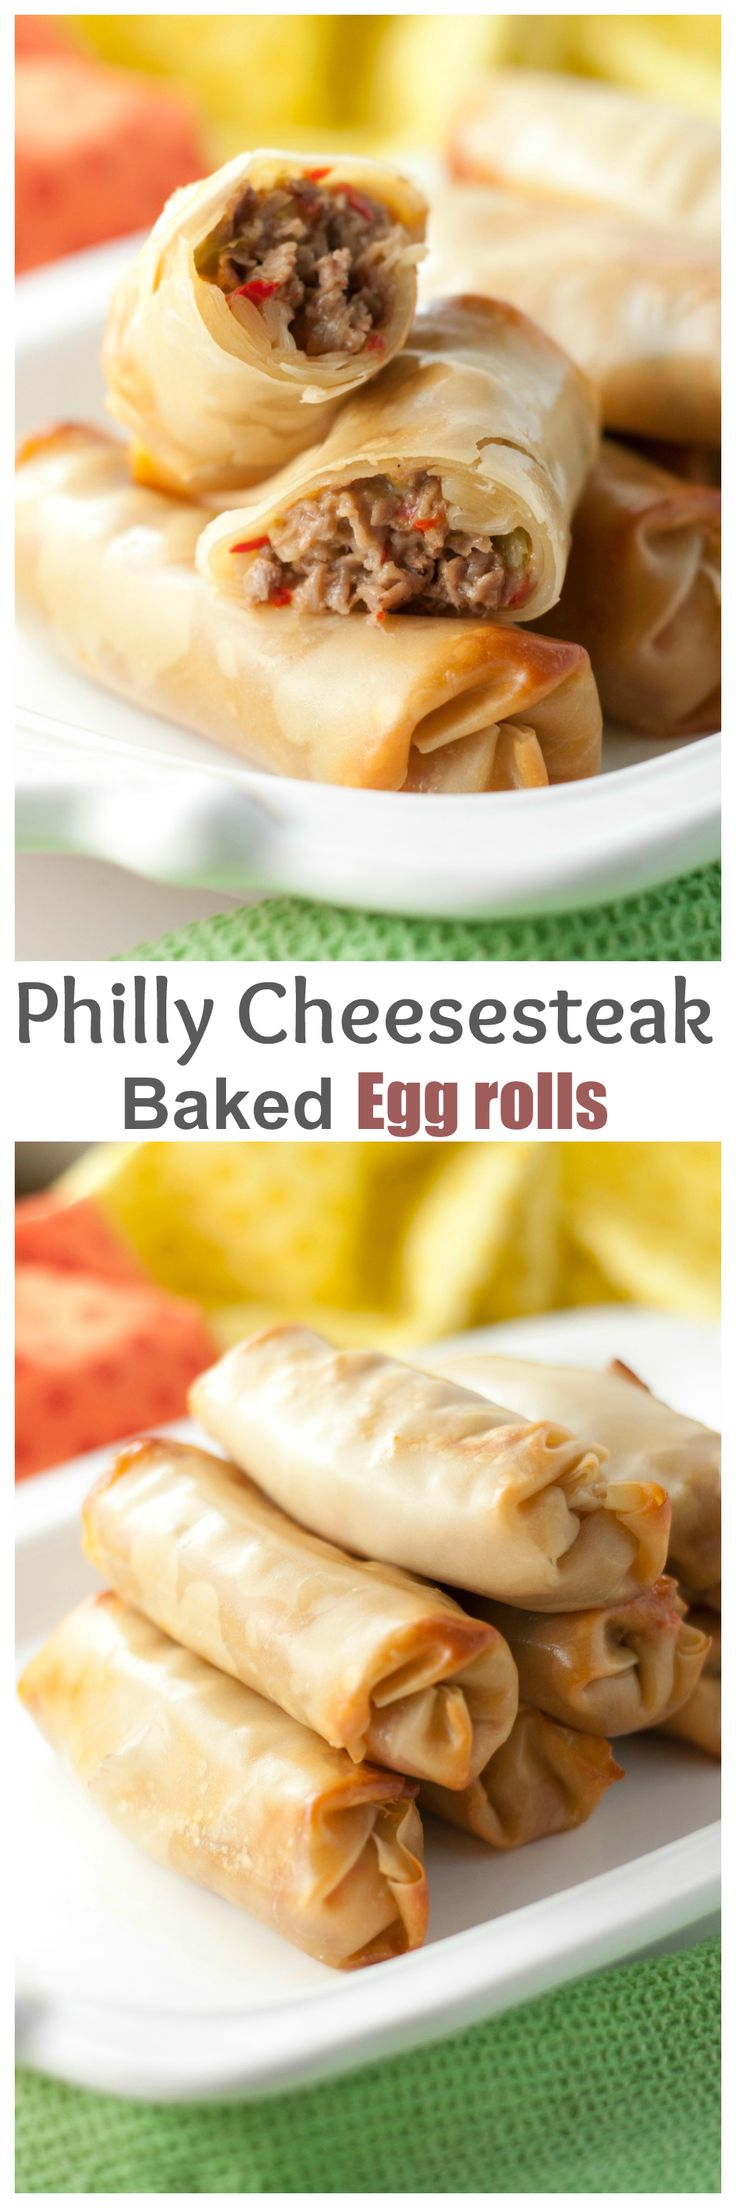 Egg roll recipes easy baked